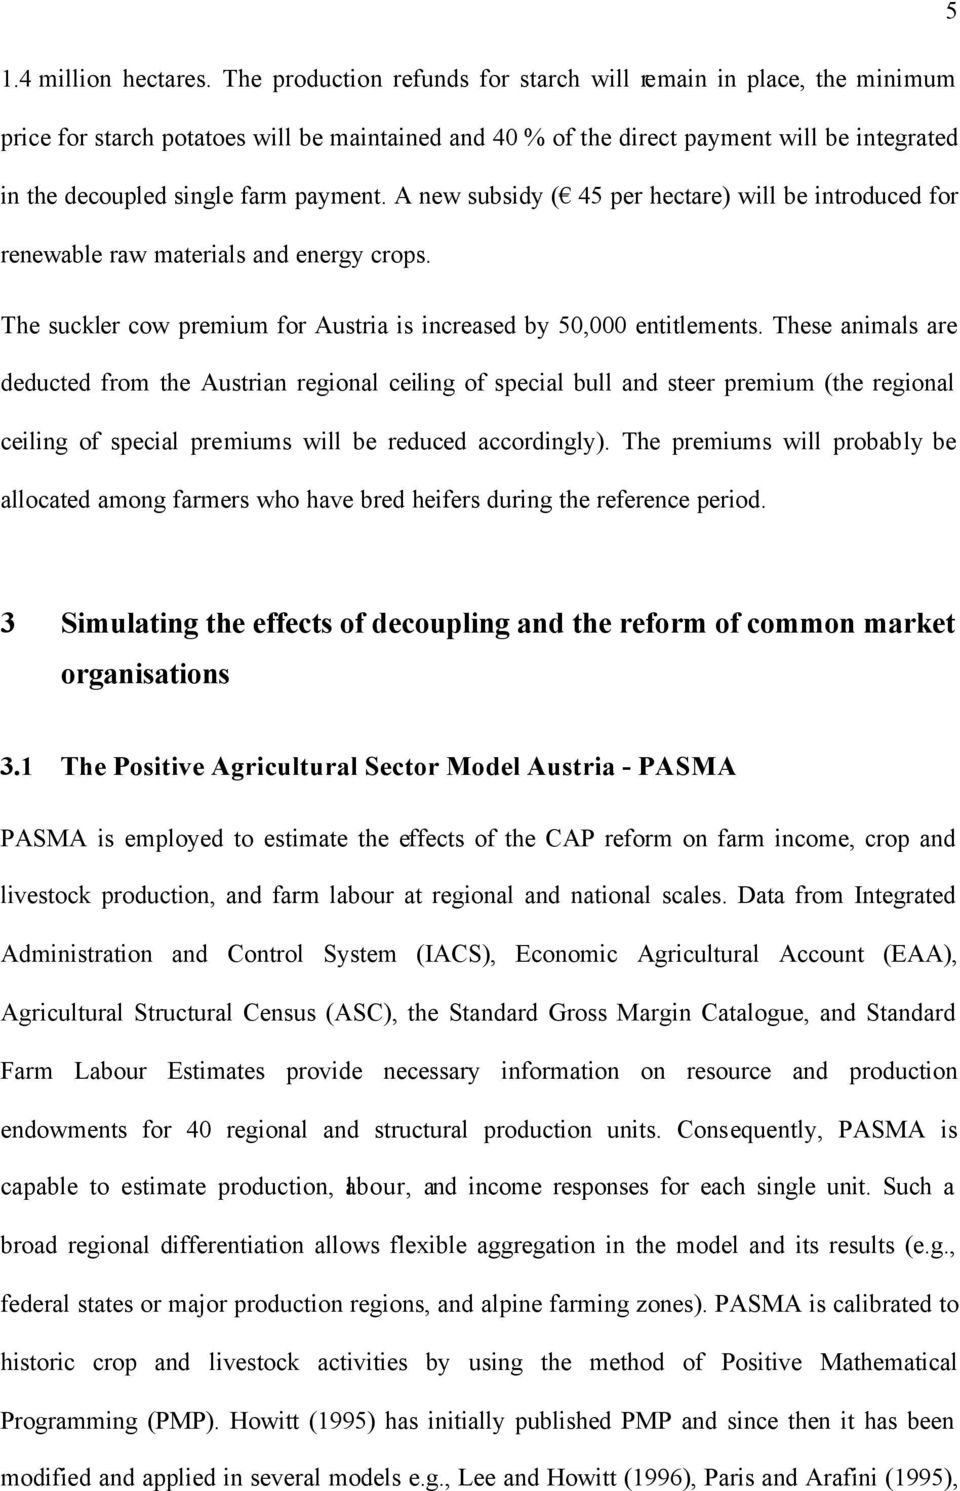 A new subsidy ( 45 per hectare) will be introduced for renewable raw materials and energy crops. The suckler cow premium for Austria is increased by 50,000 entitlements.